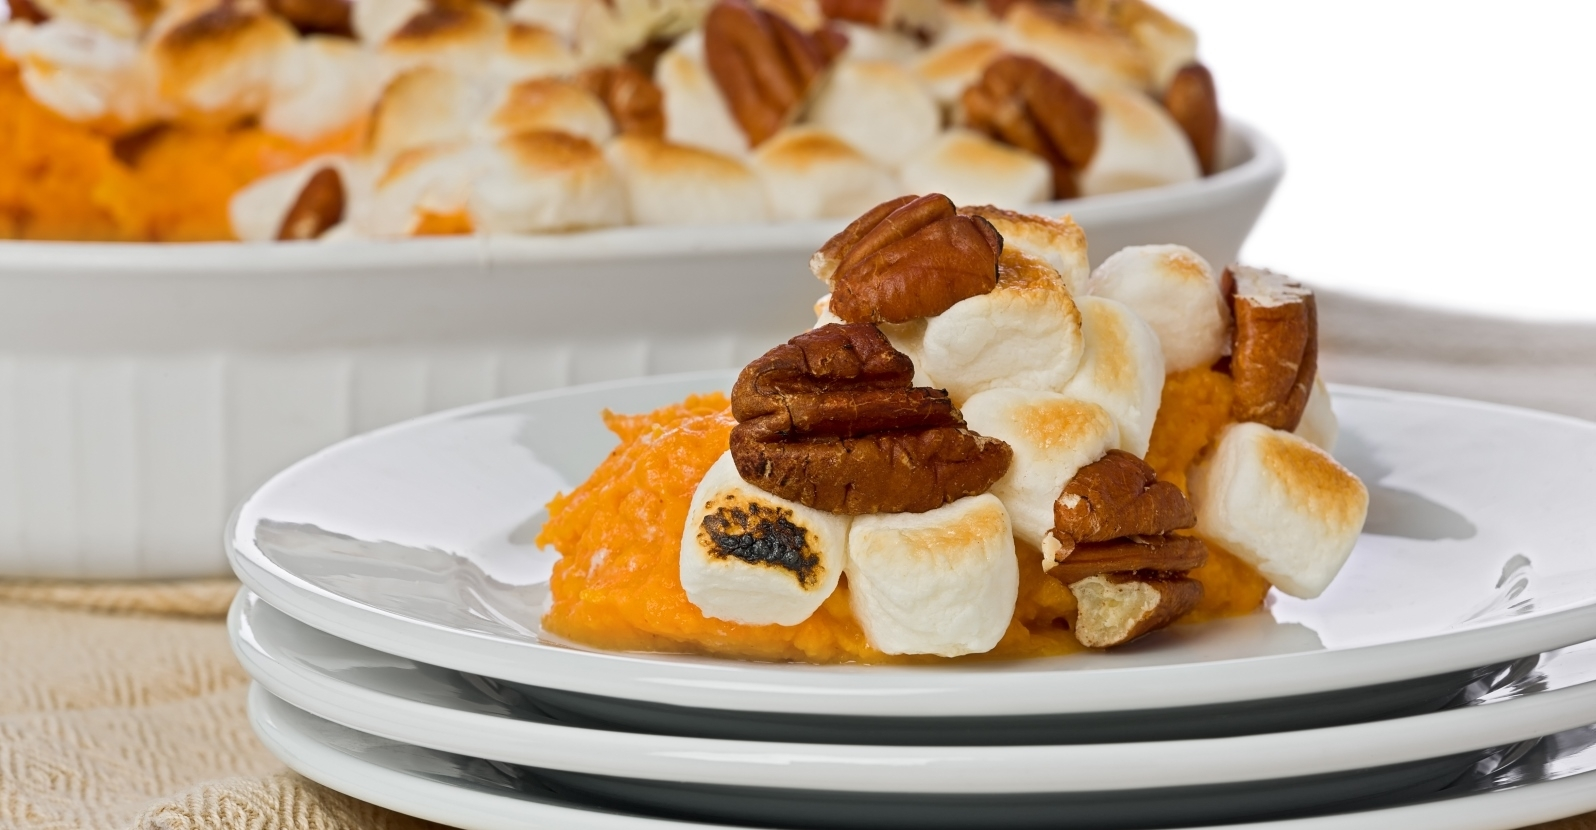 Marshmallow & Pecan Topped Sweet Potato Bake